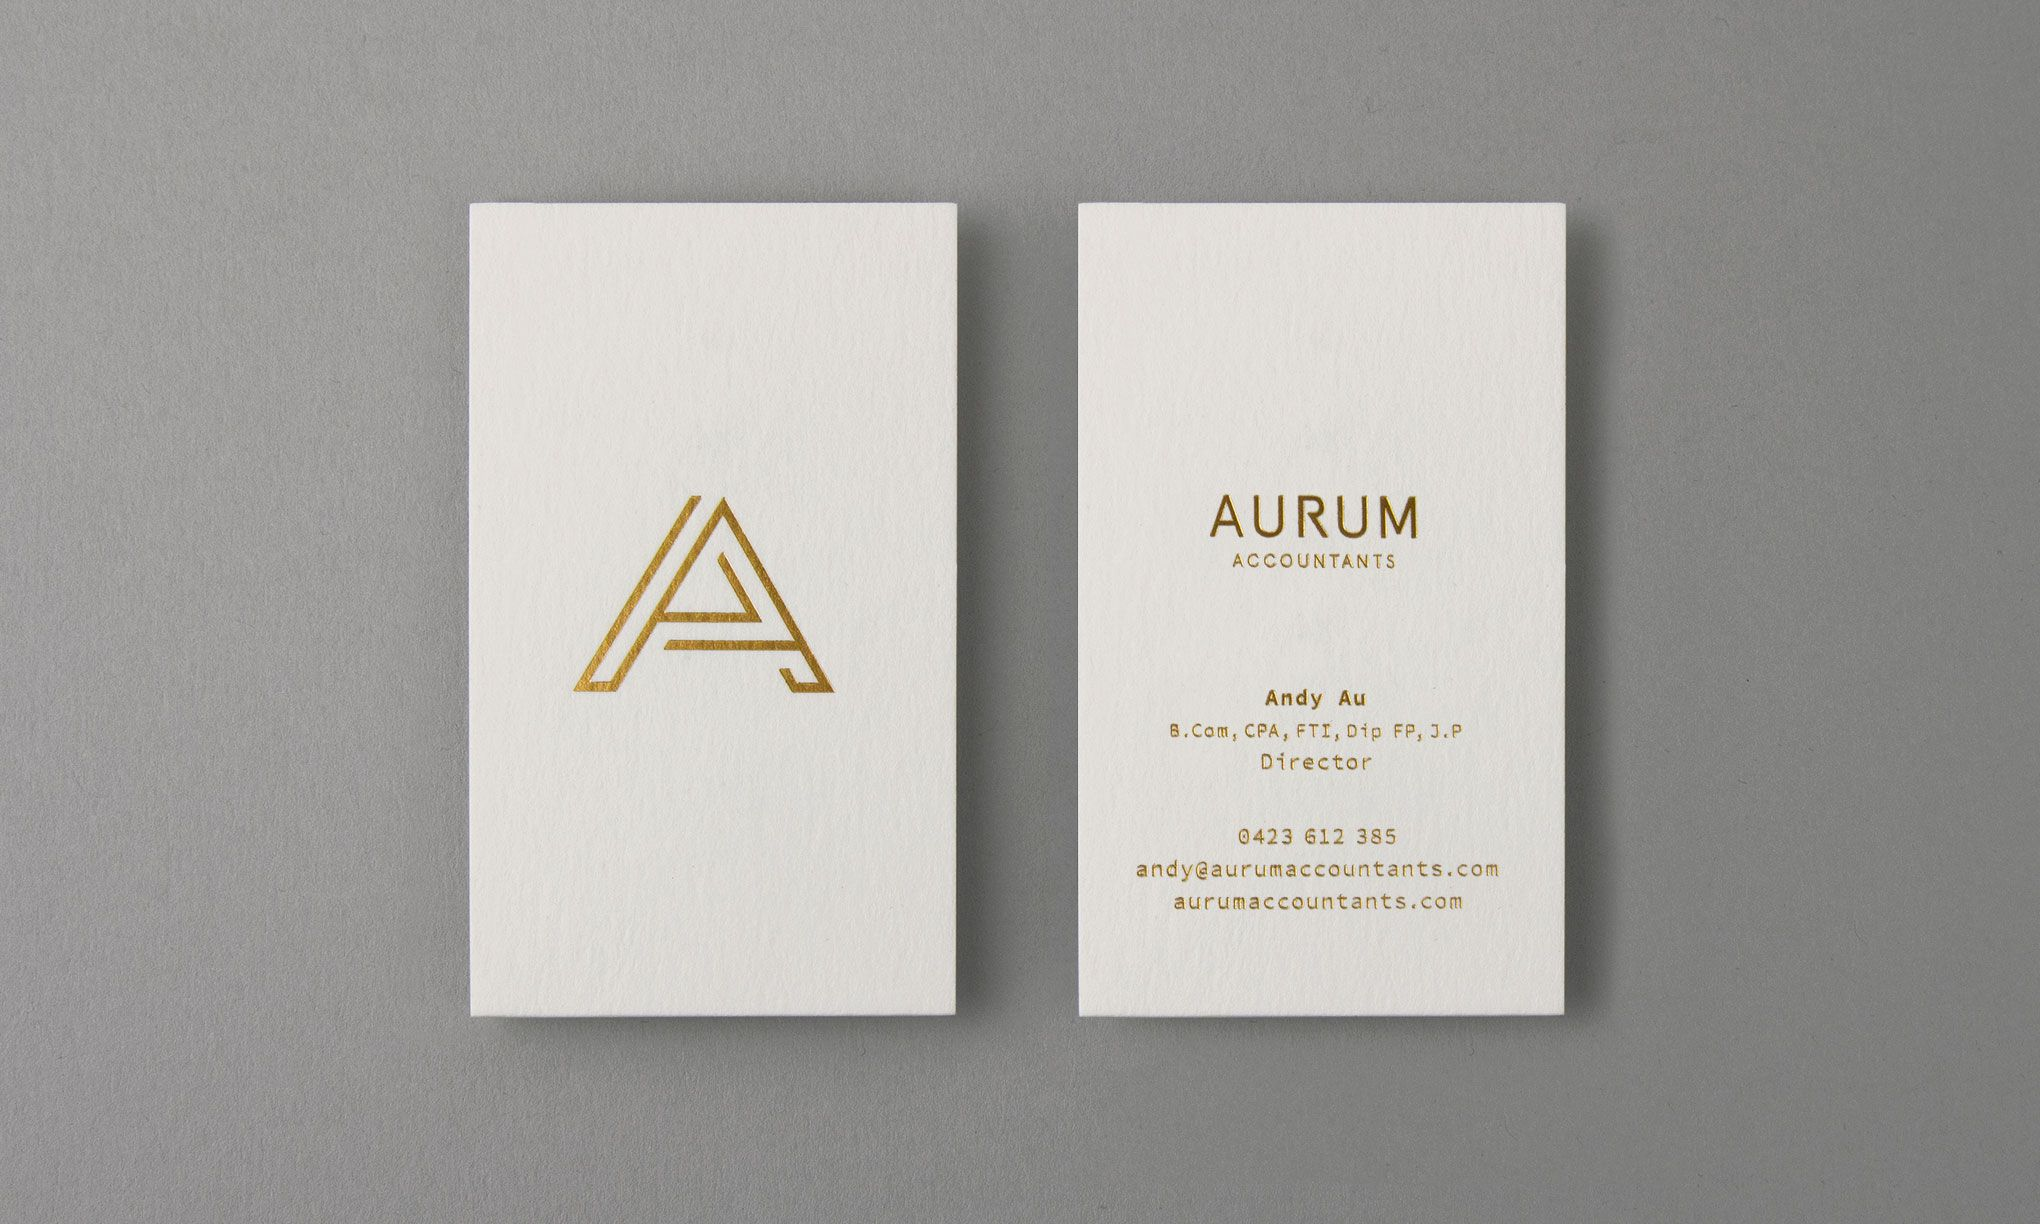 Visual identity and business cards for Aurum Accountants designed by ...